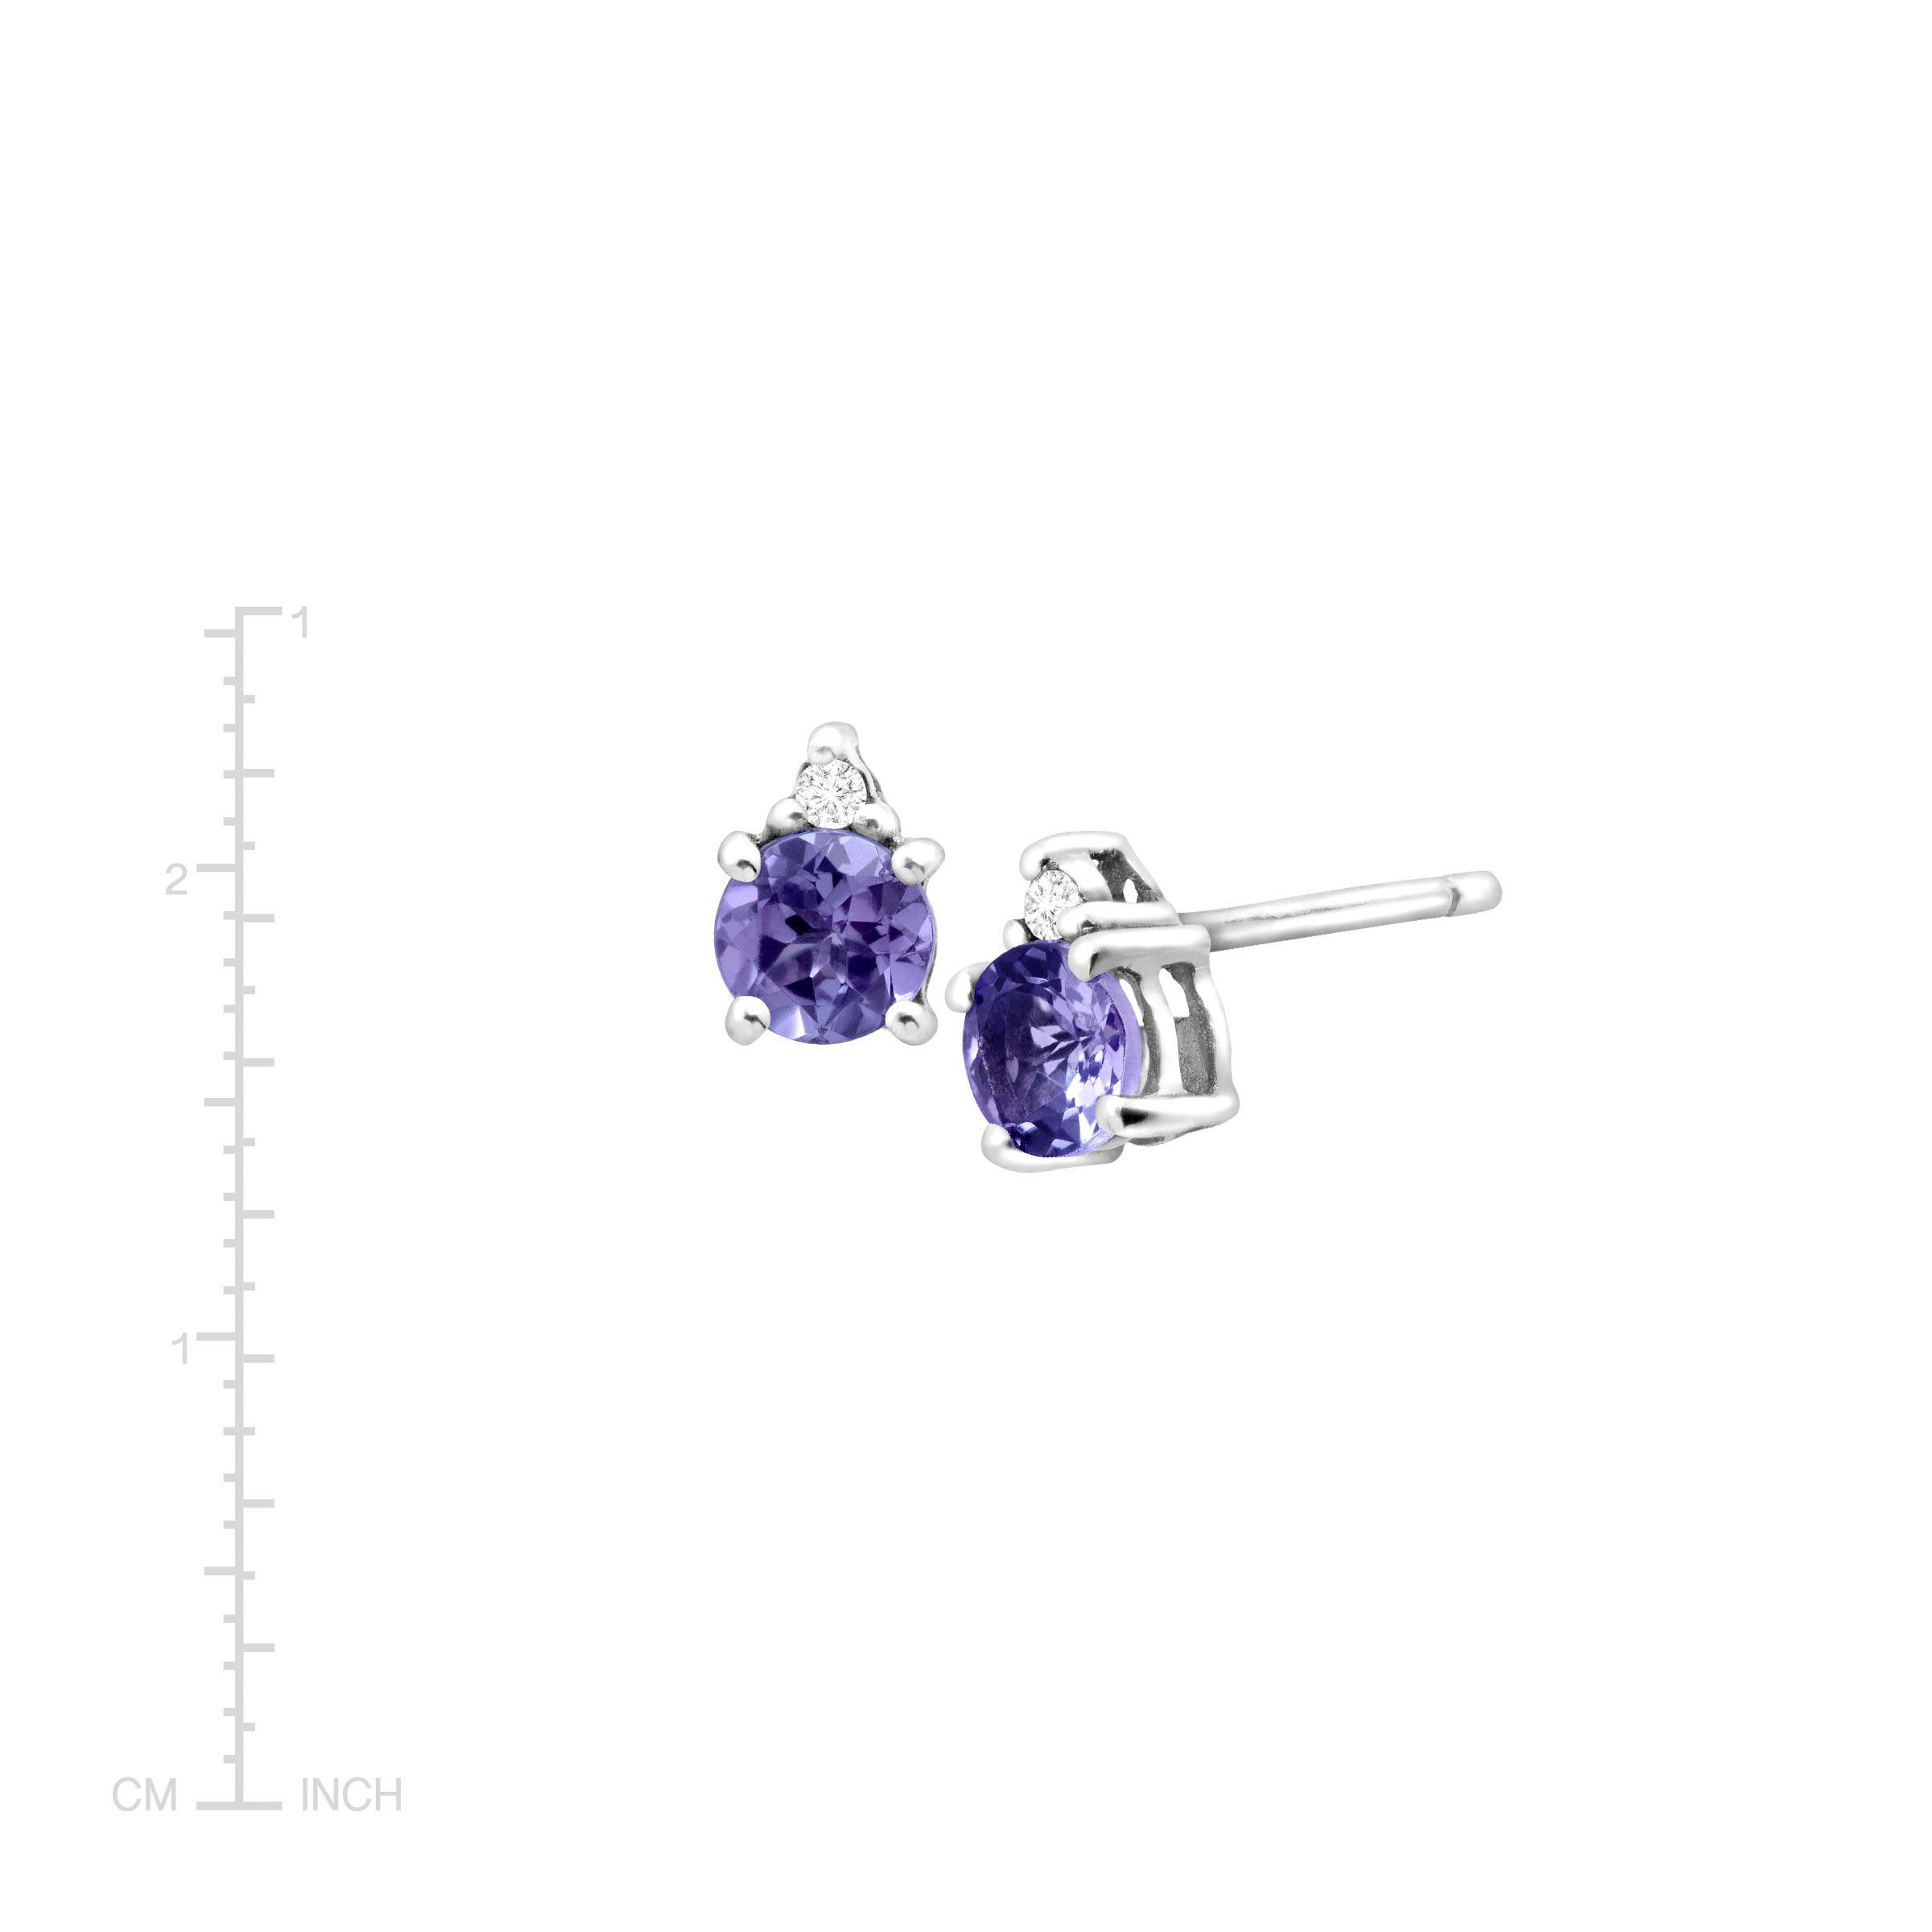 earrings designs with swarovski crystals goldplated tanzanite dige products